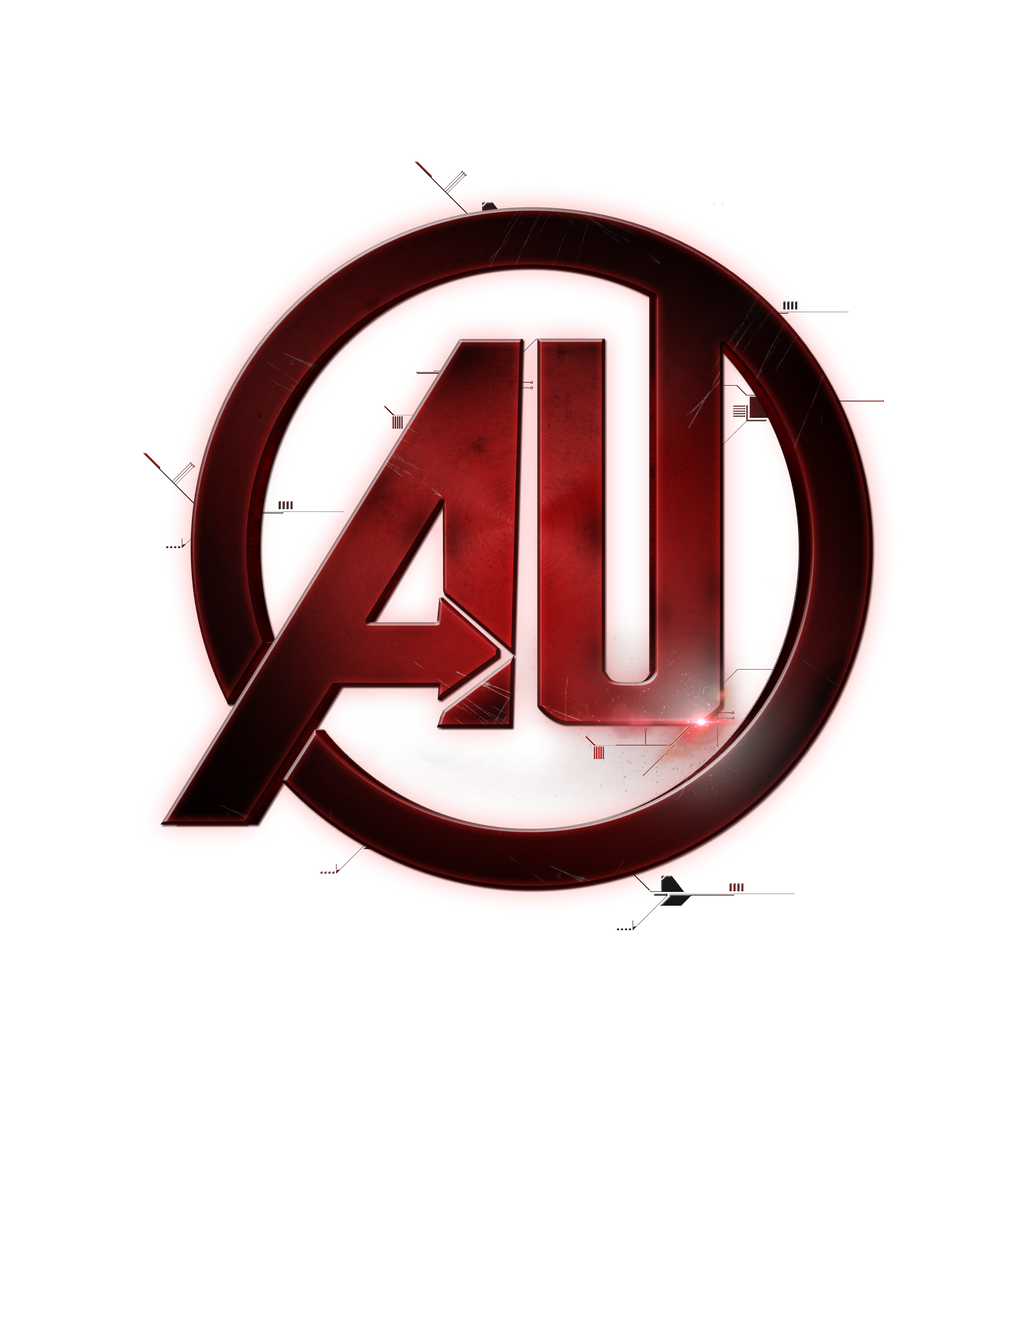 Marvel's THE AVENGERS: AGE OF ULTRON - LOGO 2 by ...